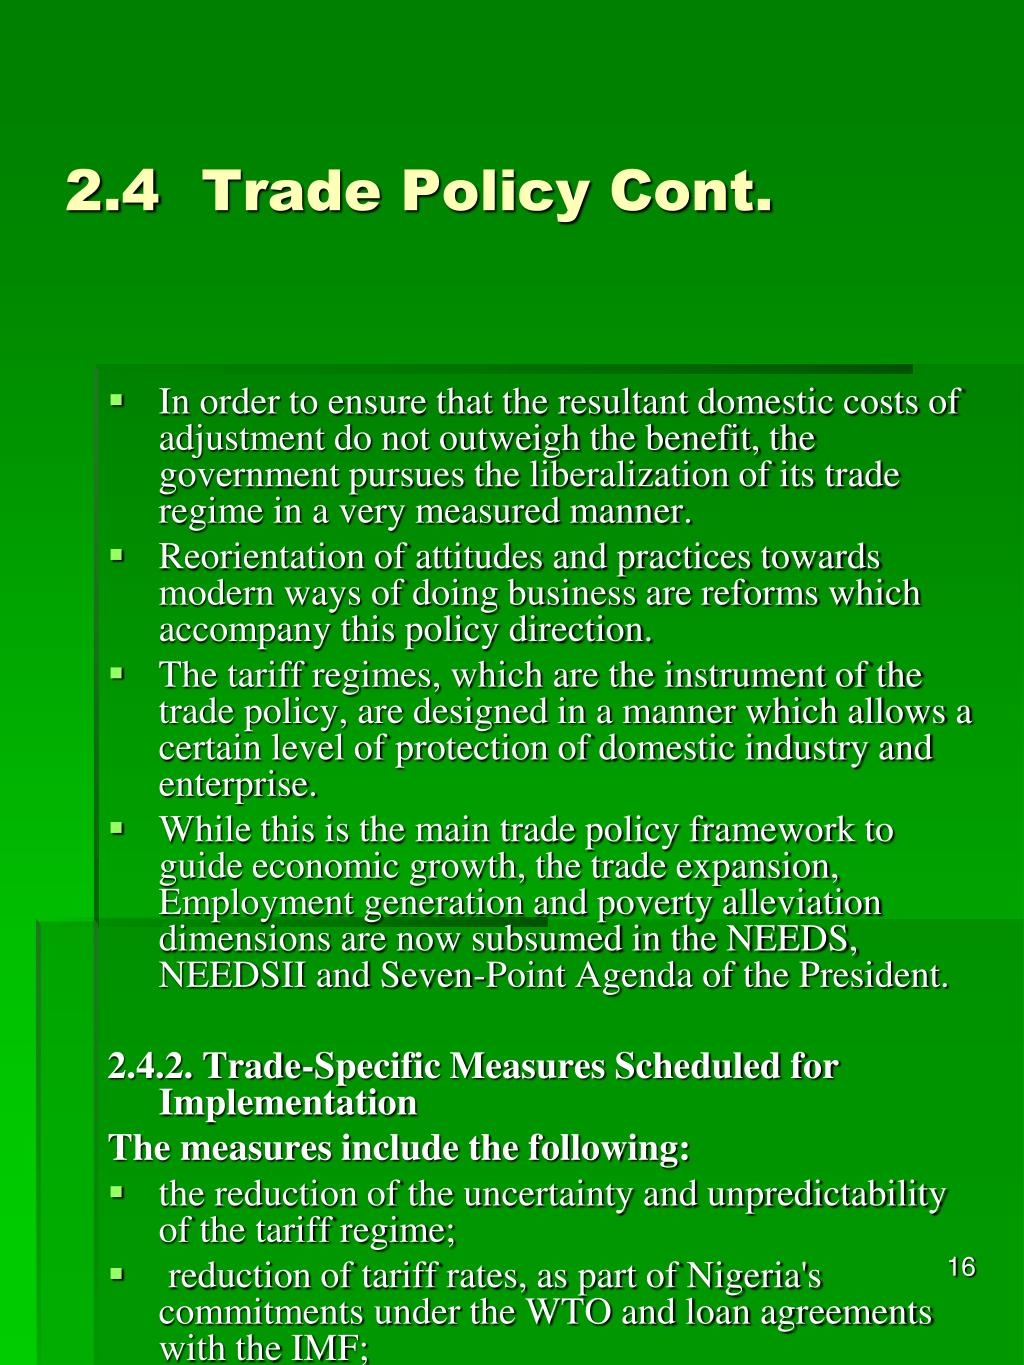 2.4Trade Policy Cont.